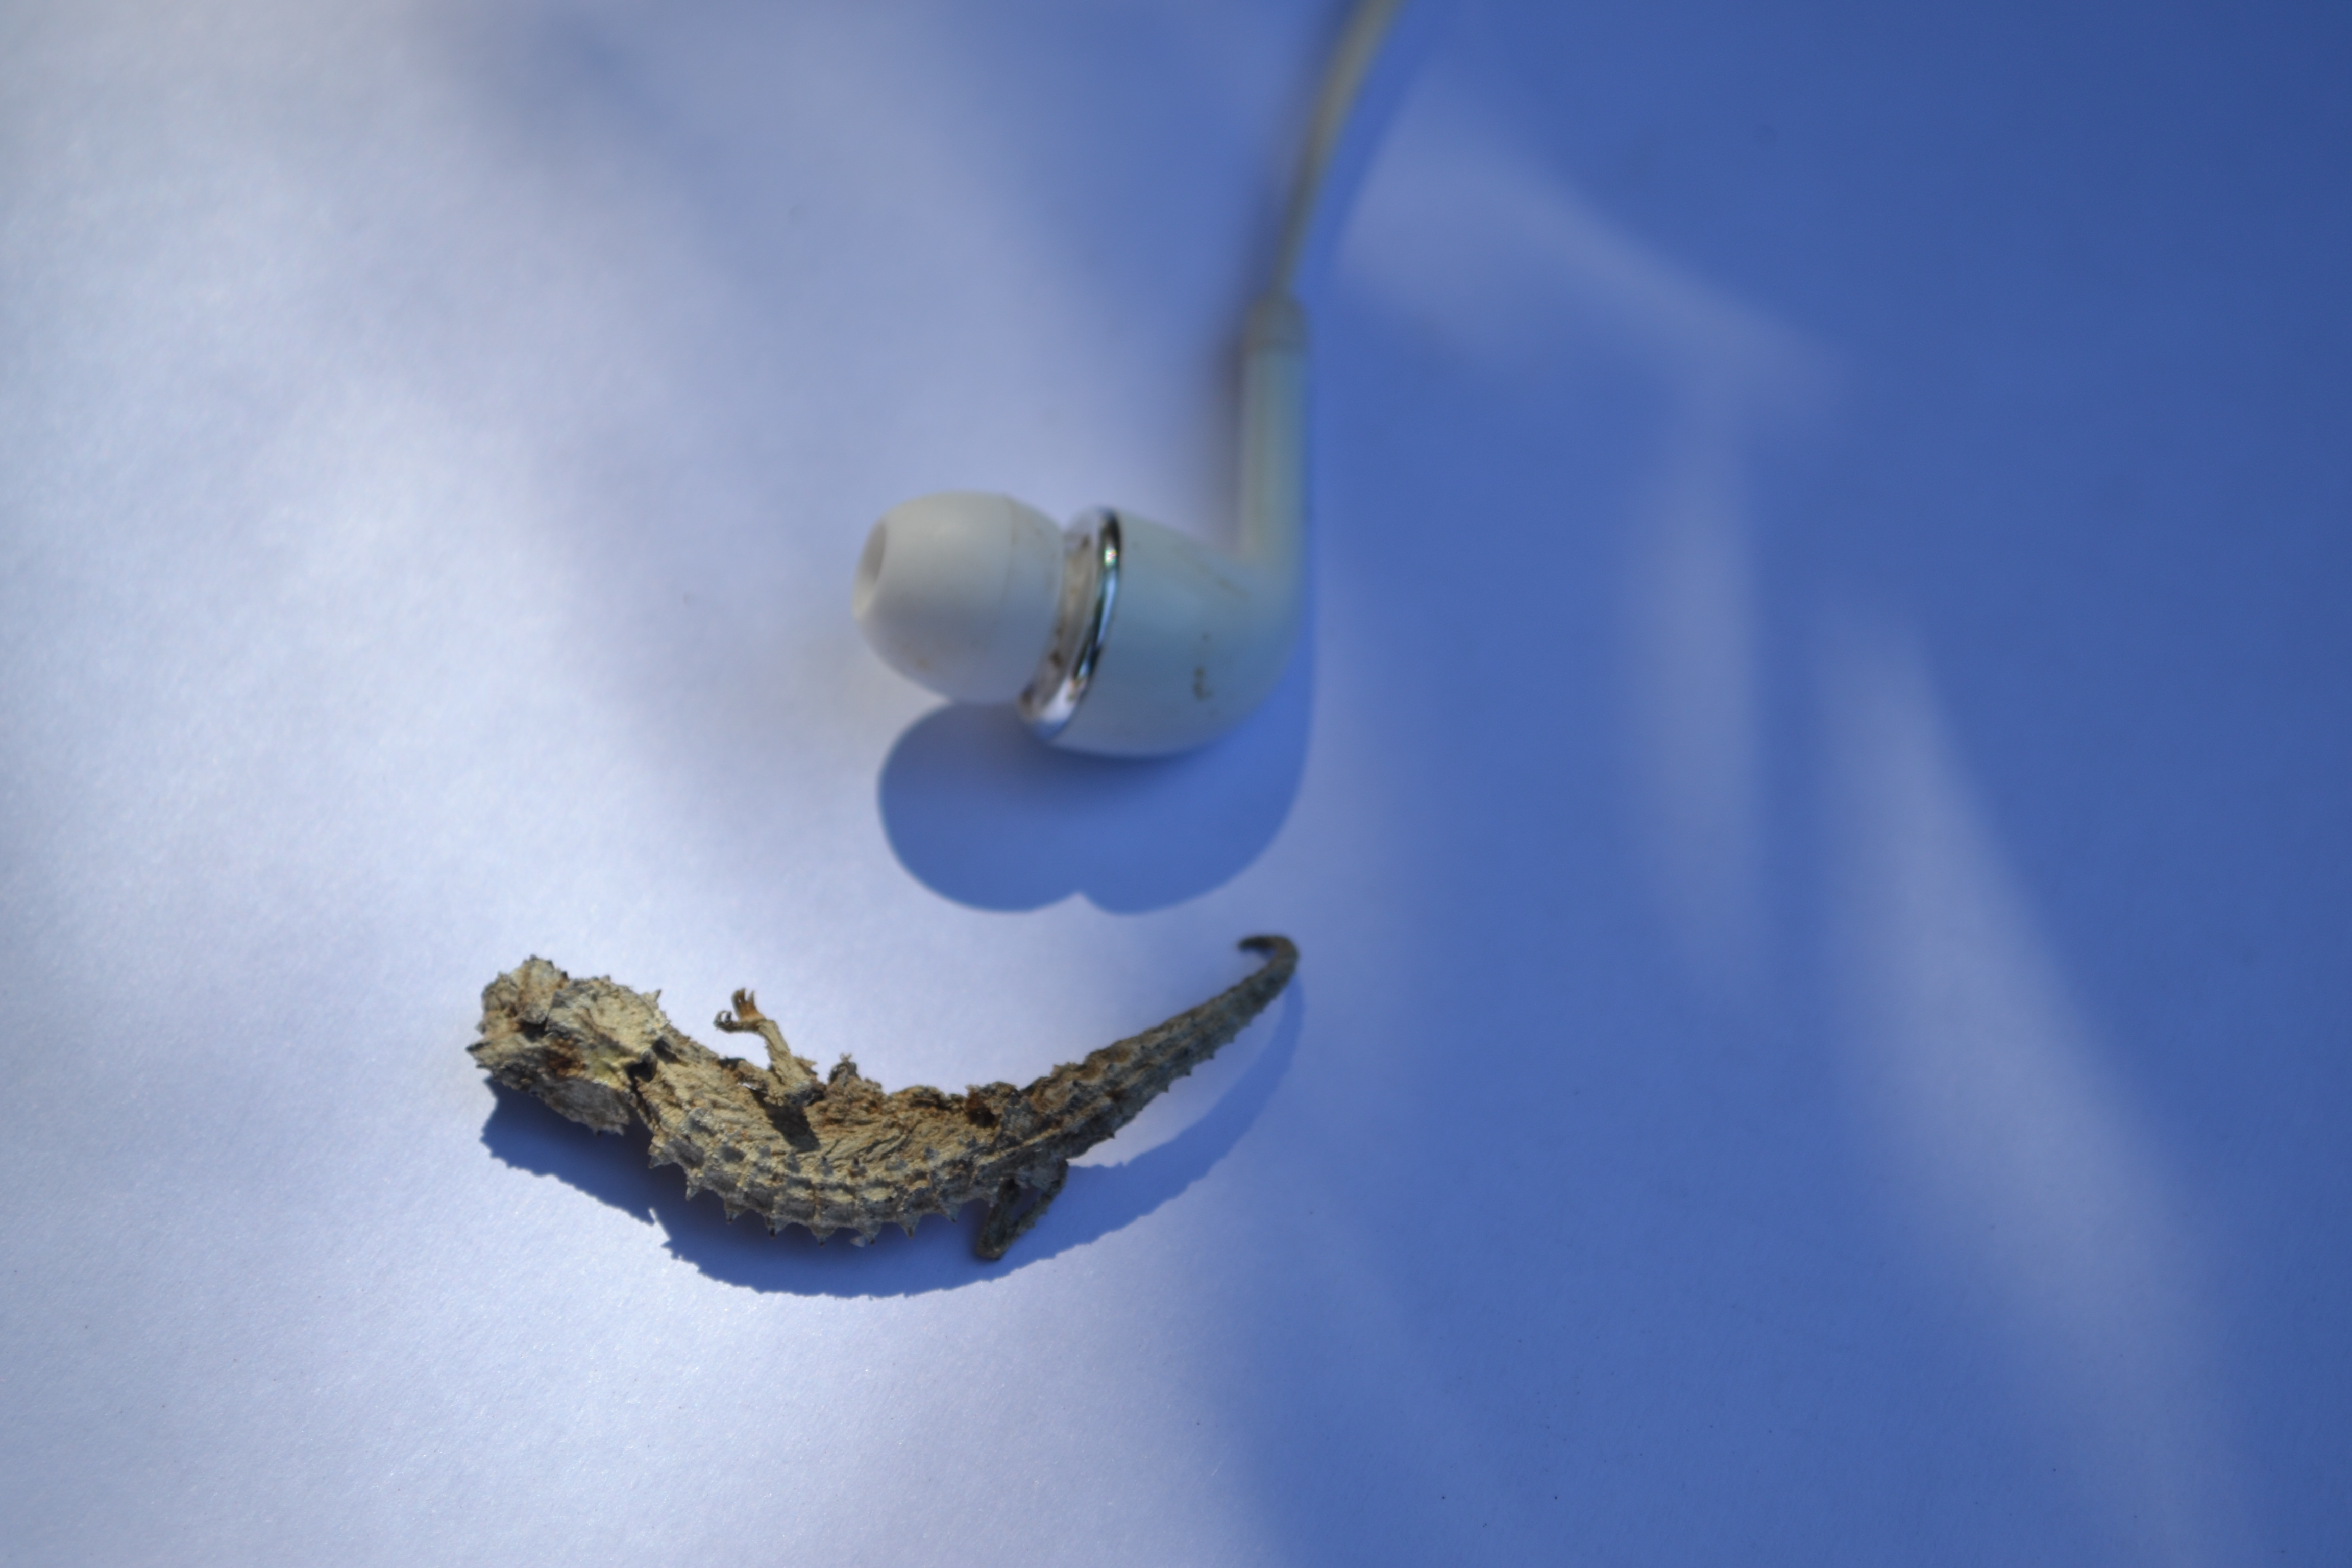 My chance encounter with the smallest chameleon in the world: earbud for scale.